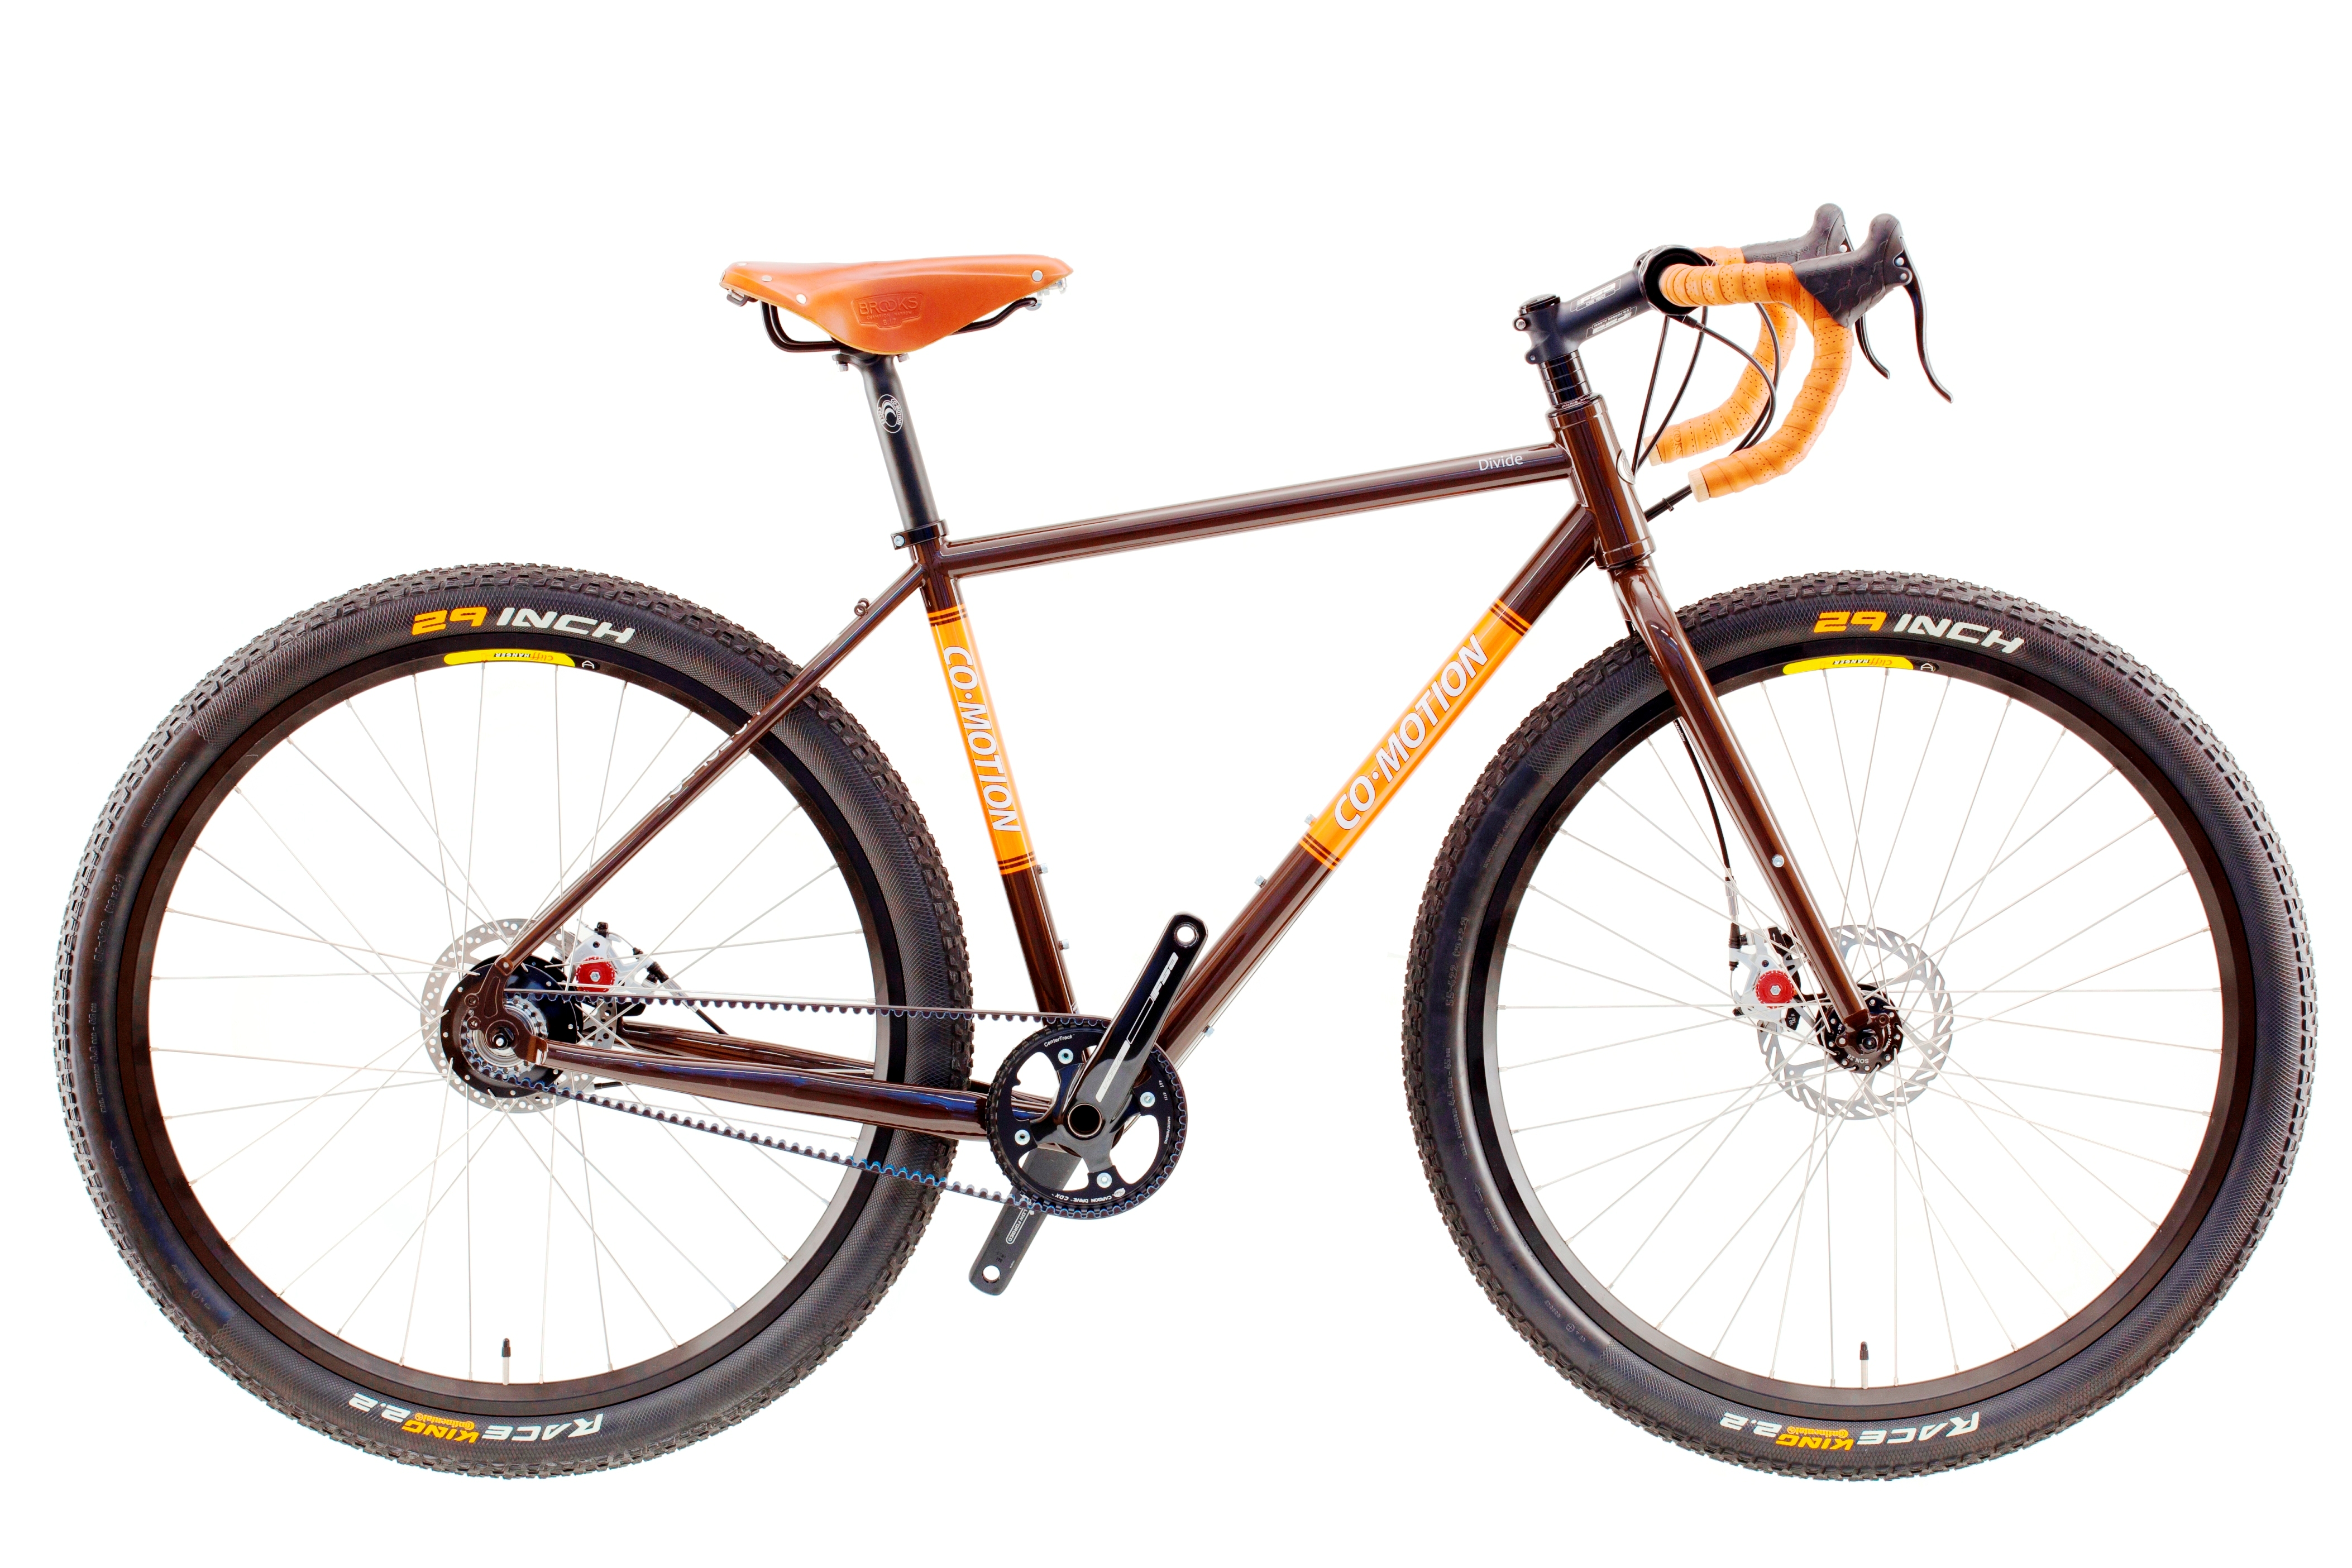 2013 Co-Motion Divide Rohloff complete